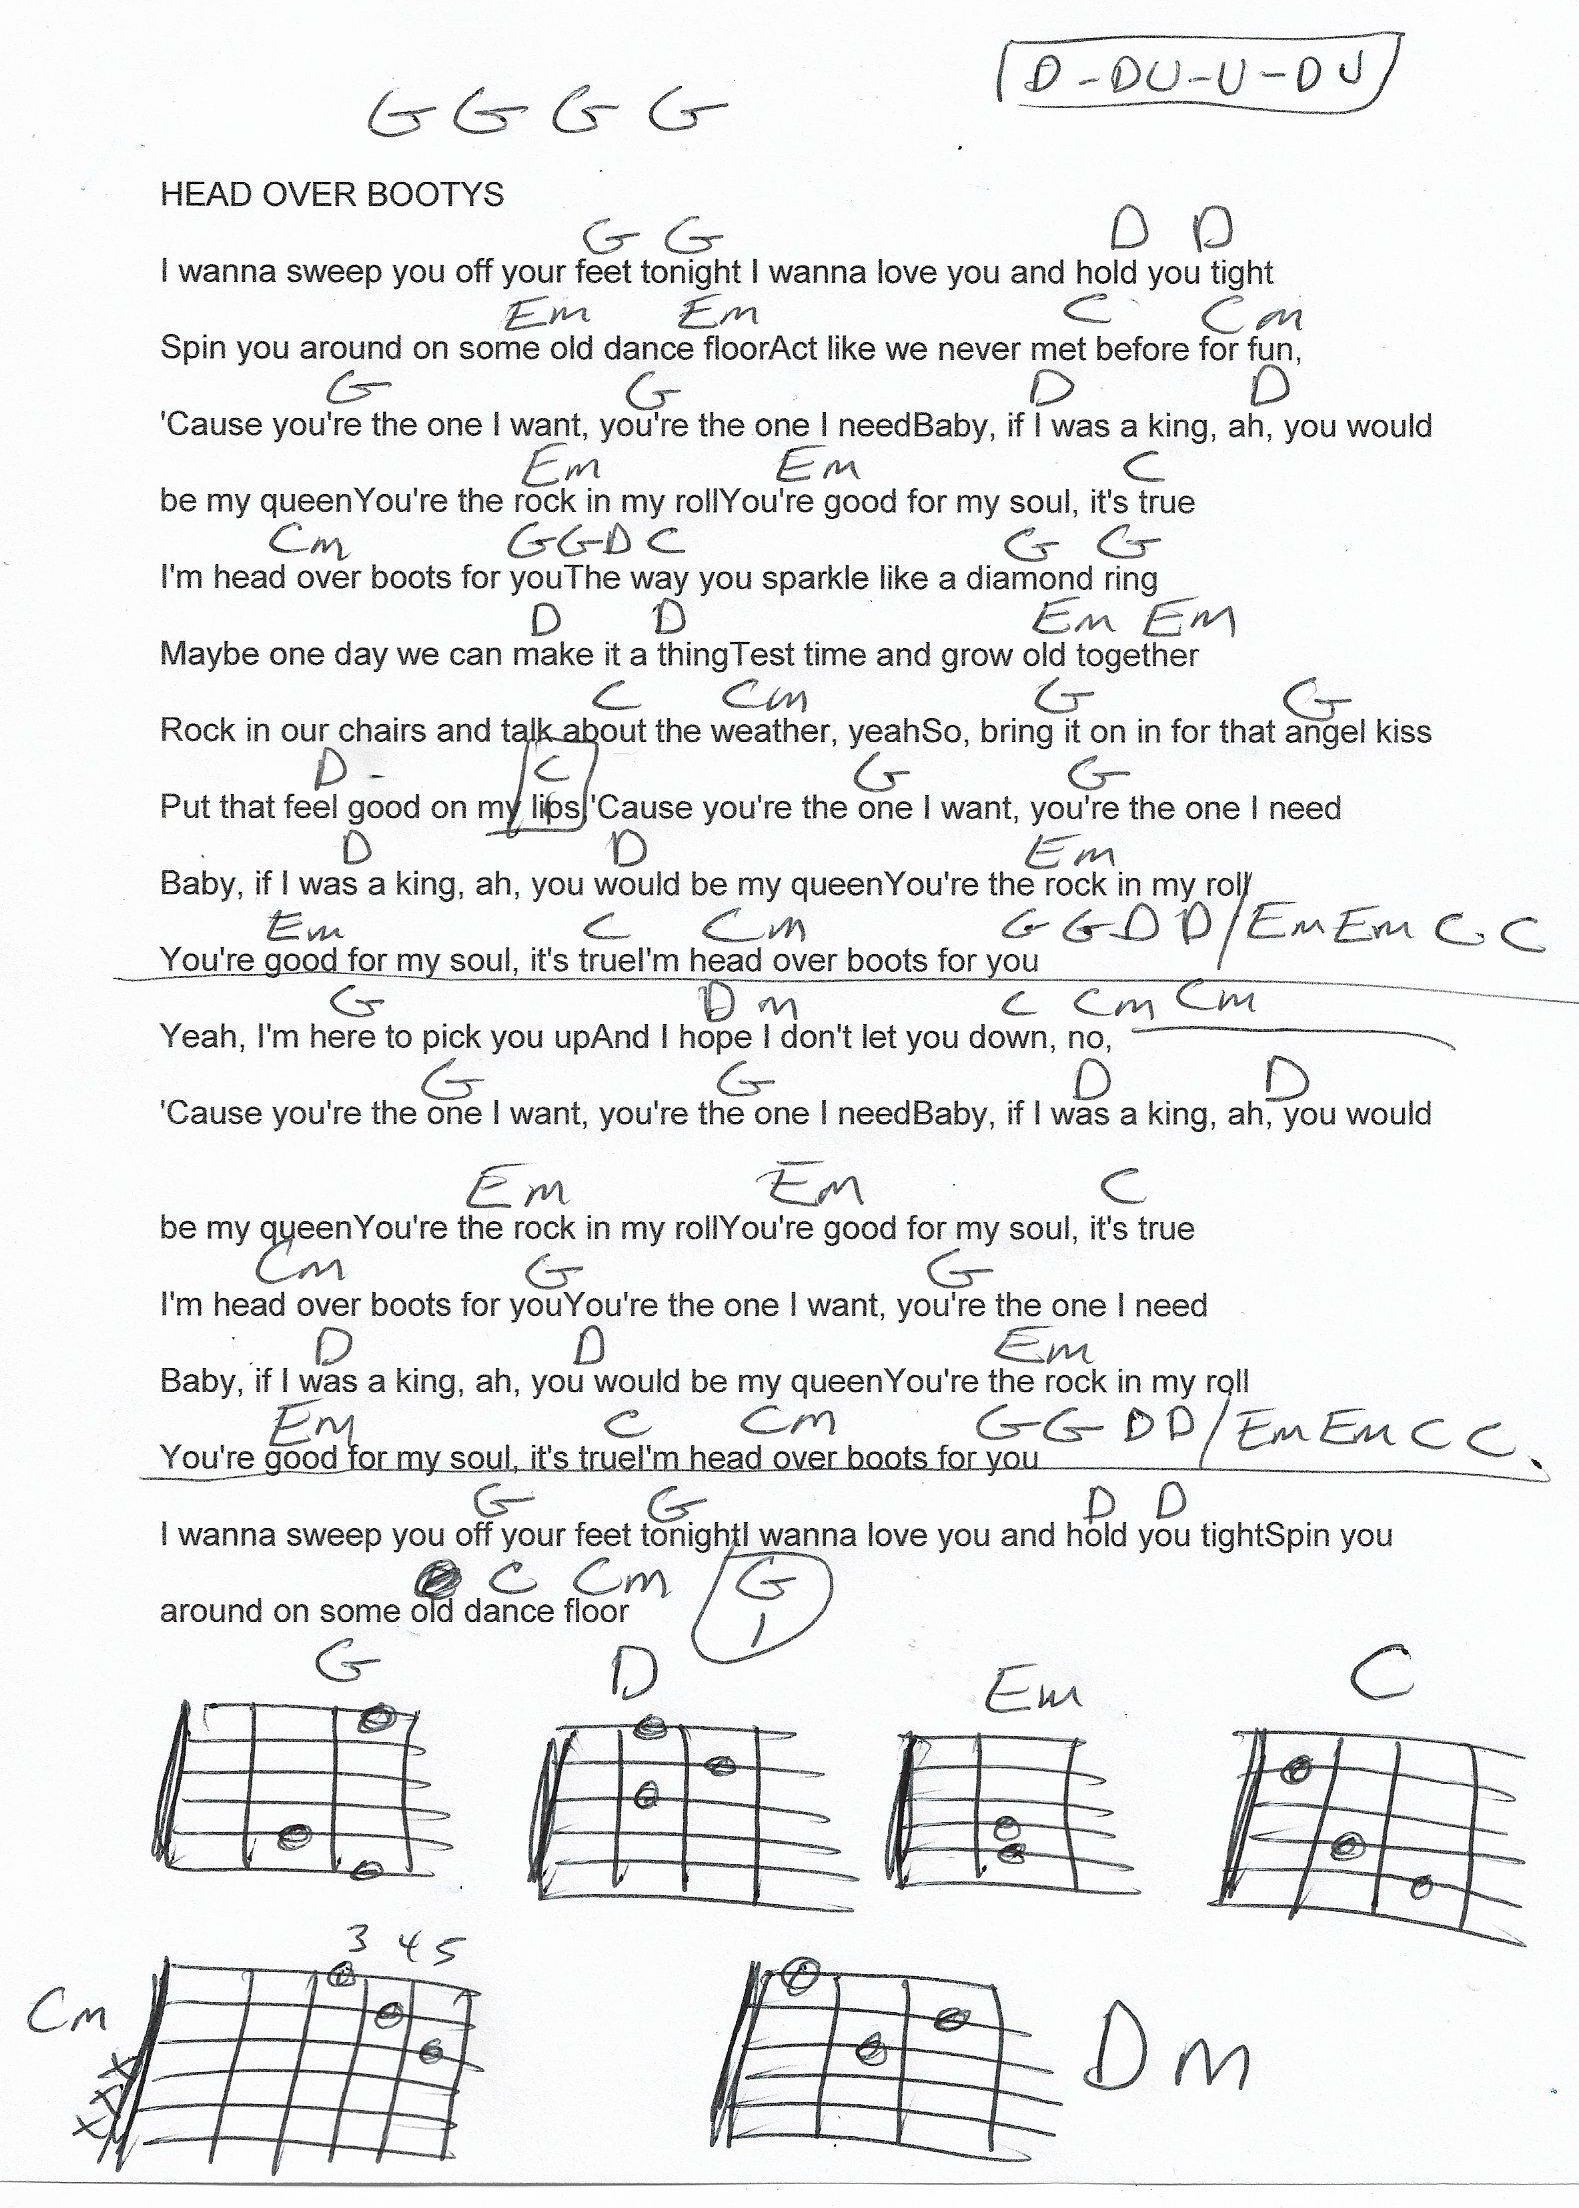 Head Over Boots (Jon Pardi) Guitar Chord Chart | Guitar chords. Guitar lessons for beginners. Ukulele chords songs